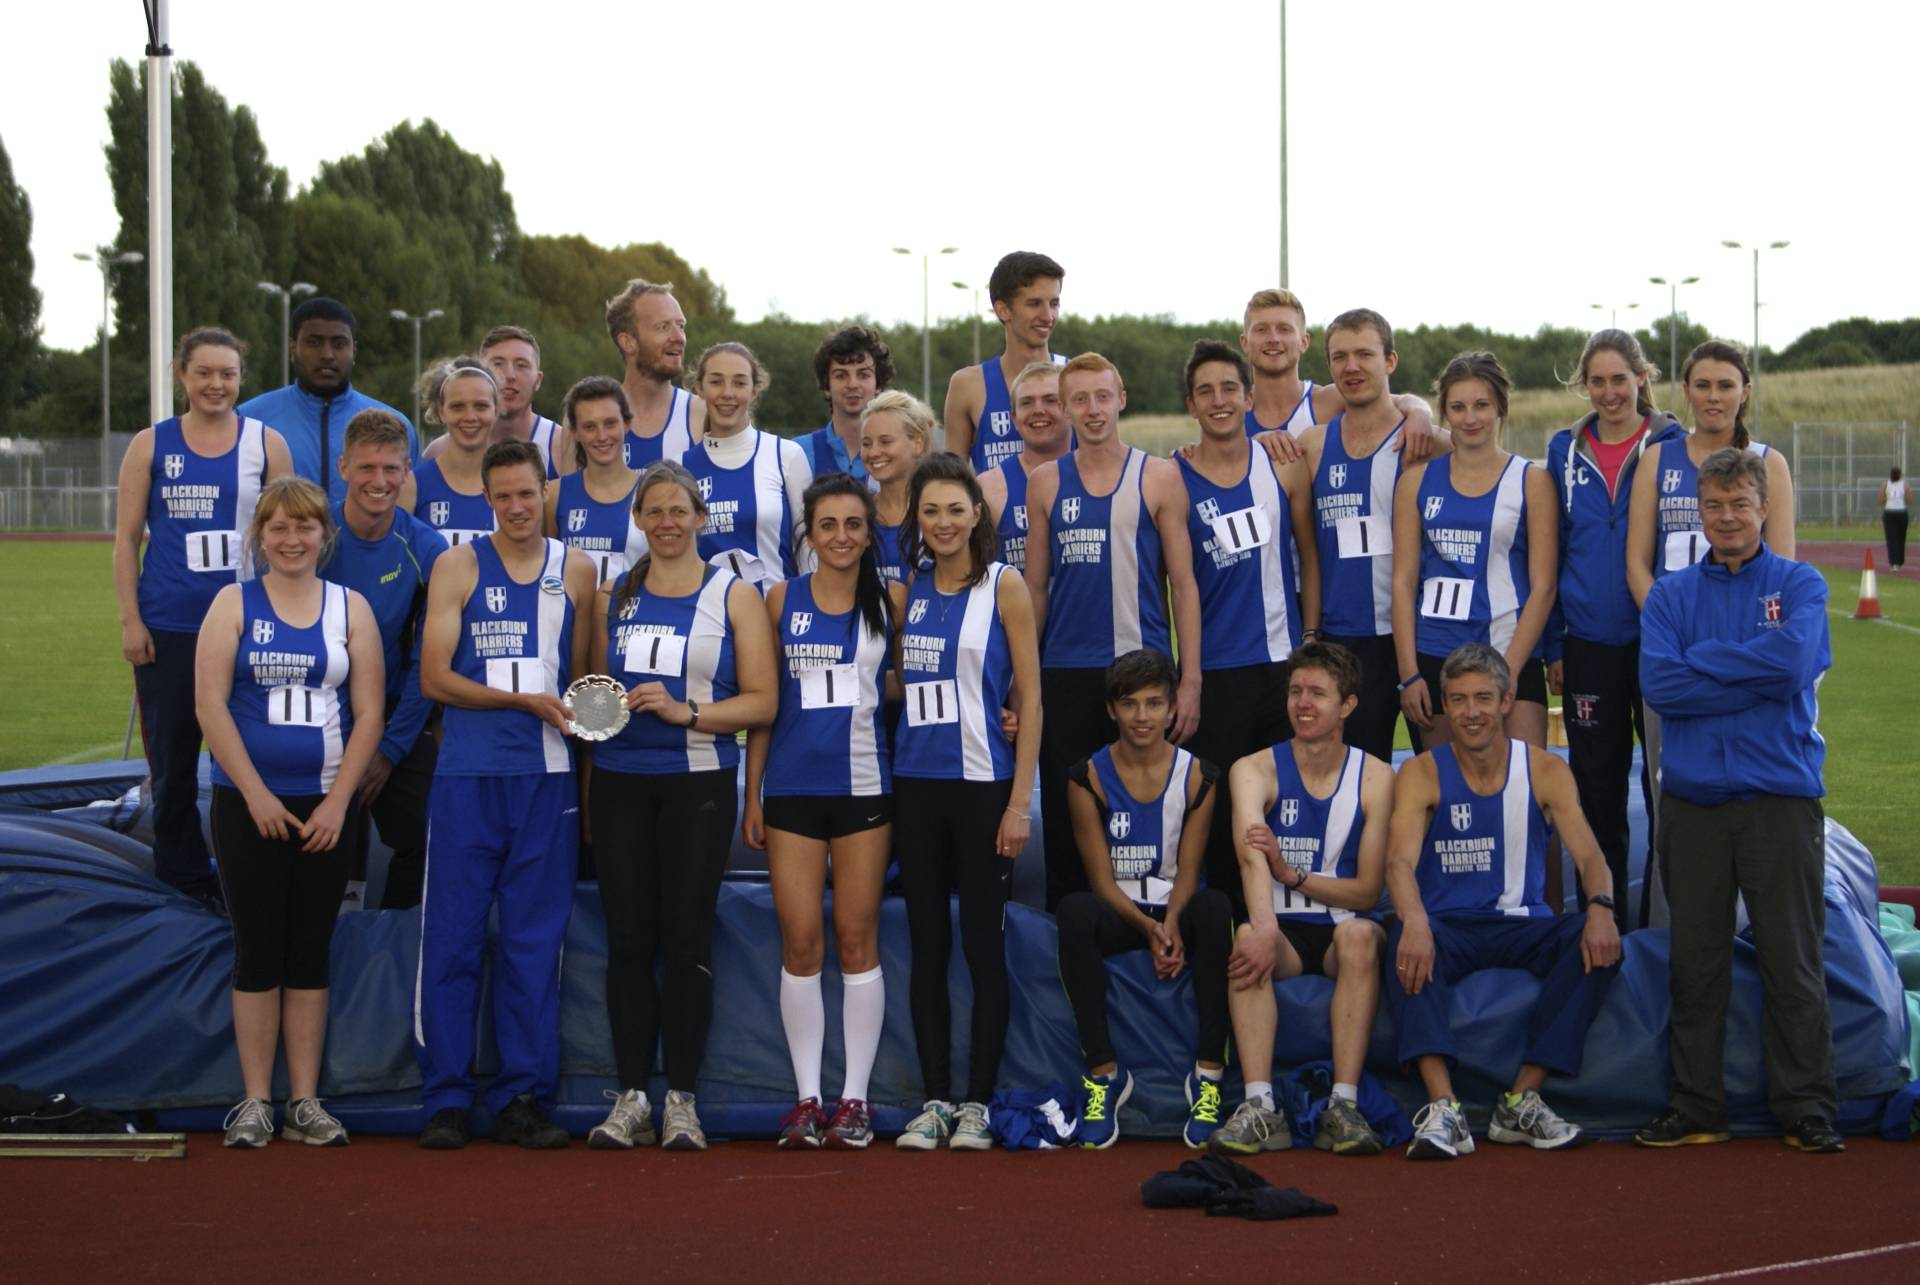 Undefeated Blackburn Harriers Northern T & F Team in 2013 – Promoted to Division One as Champions